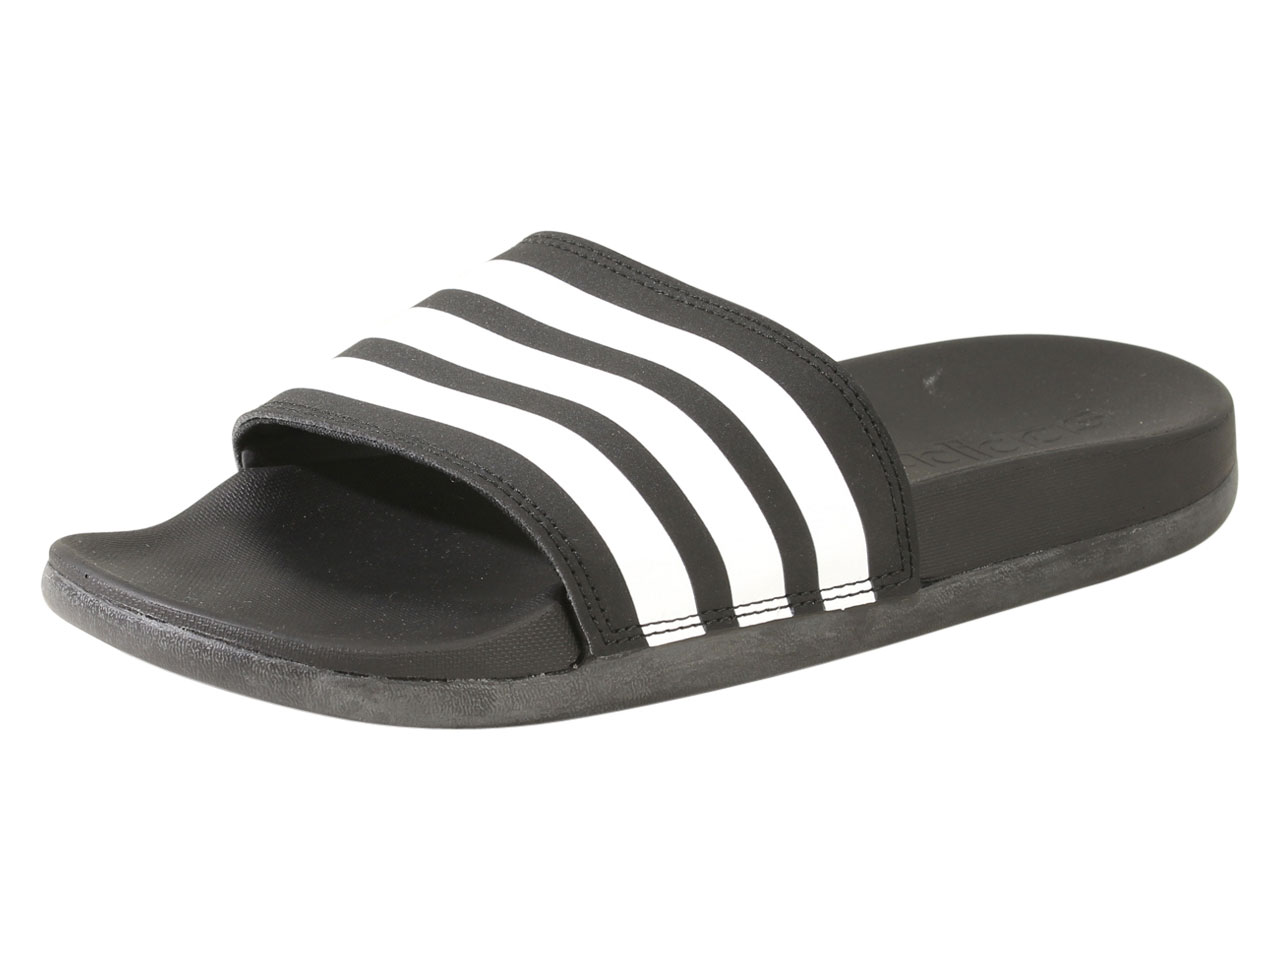 Details about Adidas Adilette Comfort Cloudfoam Plus Slides Sandals Shoes 802ebd403